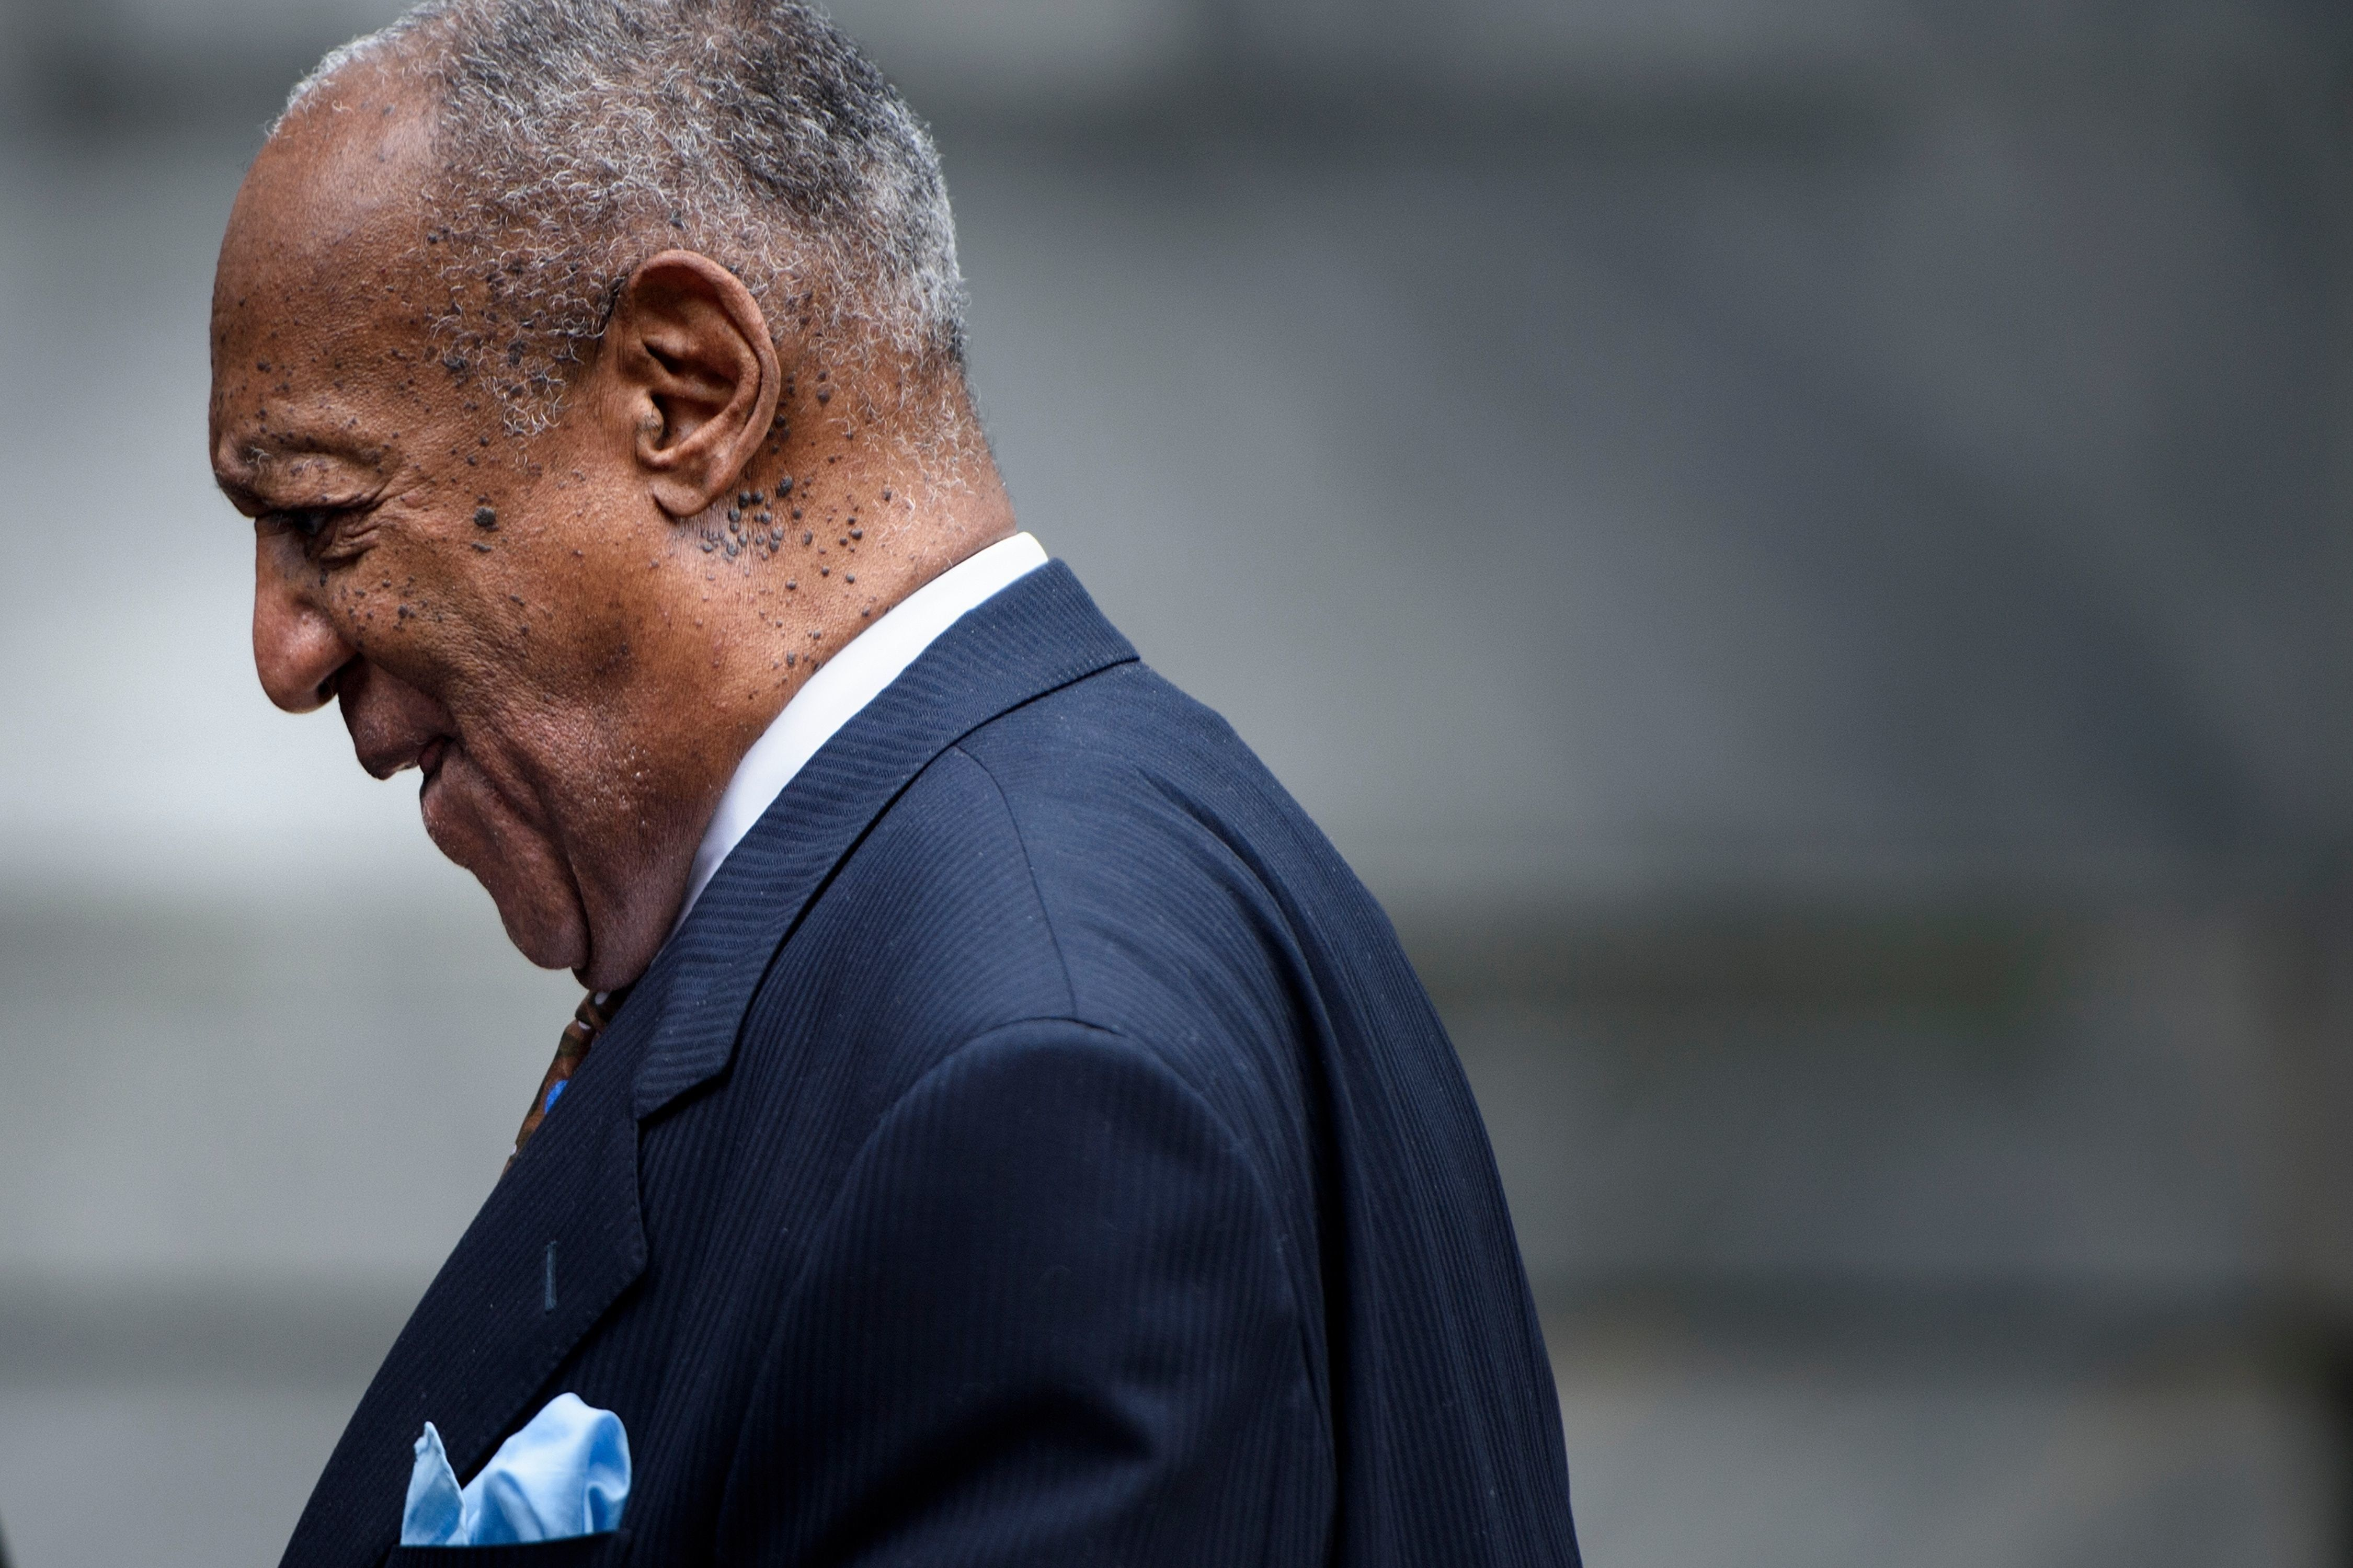 Comedian Bill Cosby leaves after the first day of a sentencing hearing at the Montgomery County Courthouse September 24, 2018 in Norristown, Pennsylvania. - Disgraced US television icon Bill Cosby returned to a Pennsylvania court on Monday to face sentencing for sexual assault, five months after his conviction at the first celebrity trial of the #MeToo era. (Photo by Brendan Smialowski / AFP)        (Photo credit should read BRENDAN SMIALOWSKI/AFP/Getty Images)